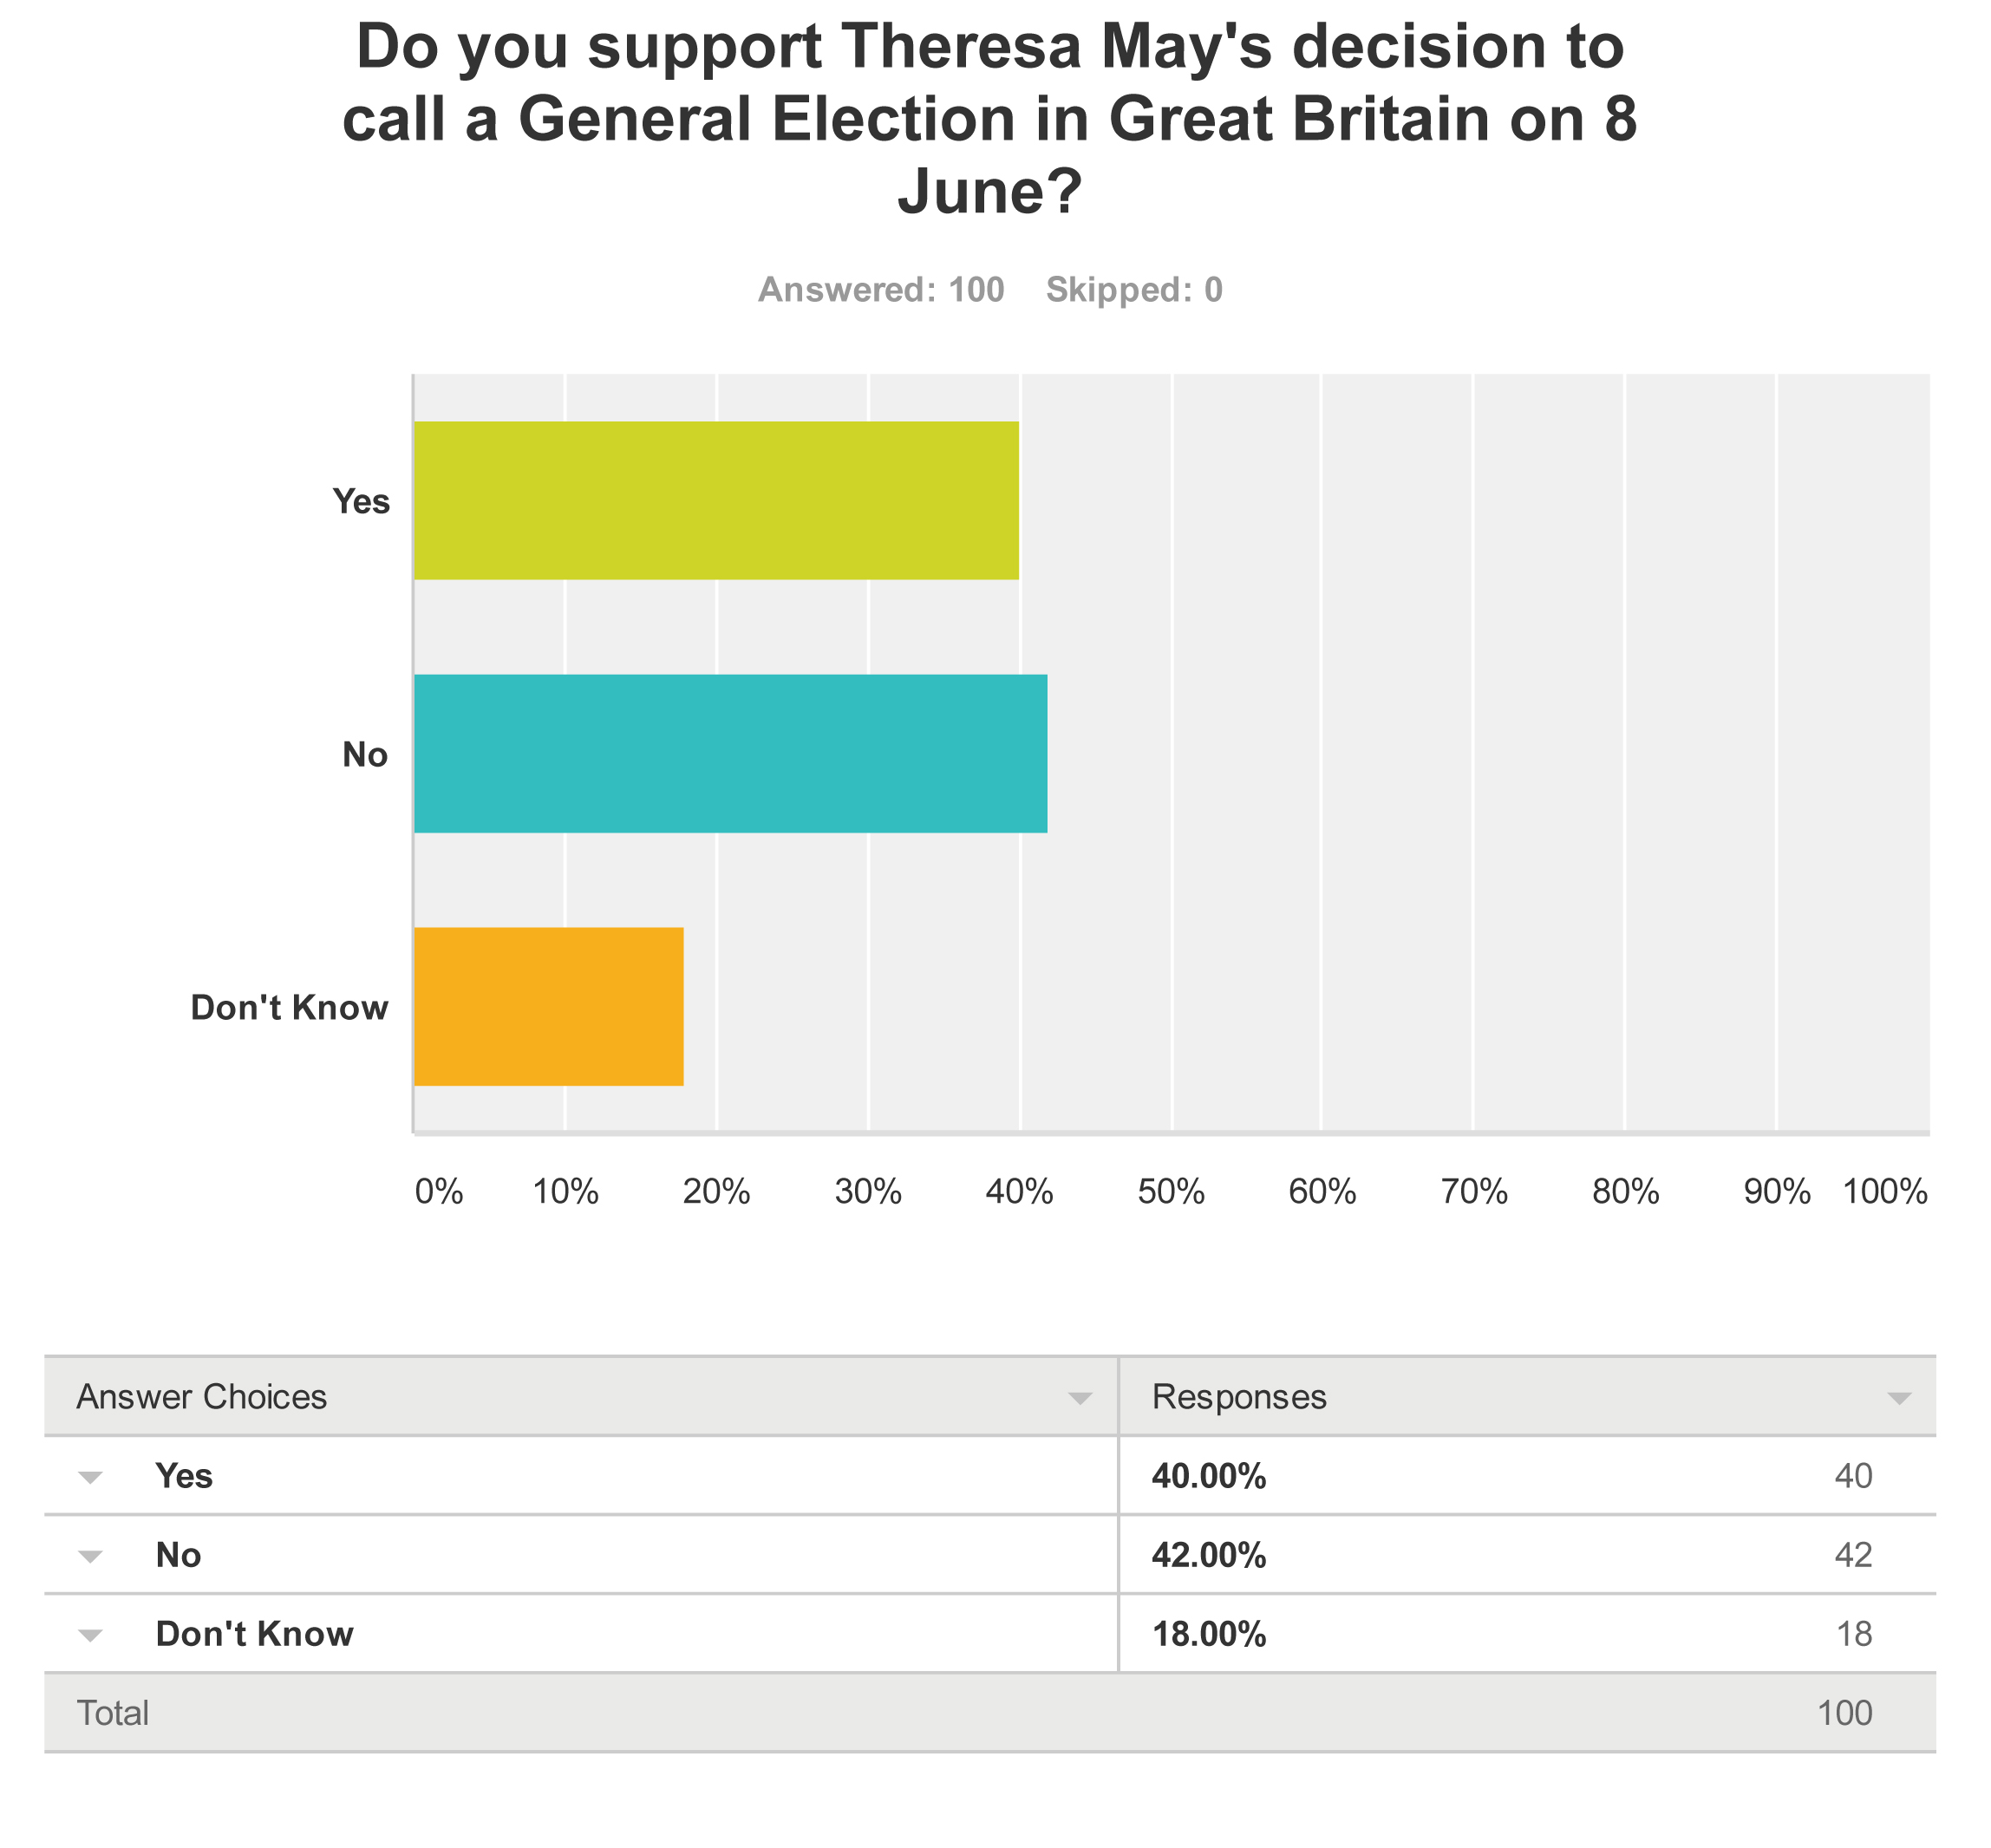 SNAP POLL_ ARCHAEOLOGY AND HERITAGE IN THE UK GENERAL ELECTION-Q1 copy